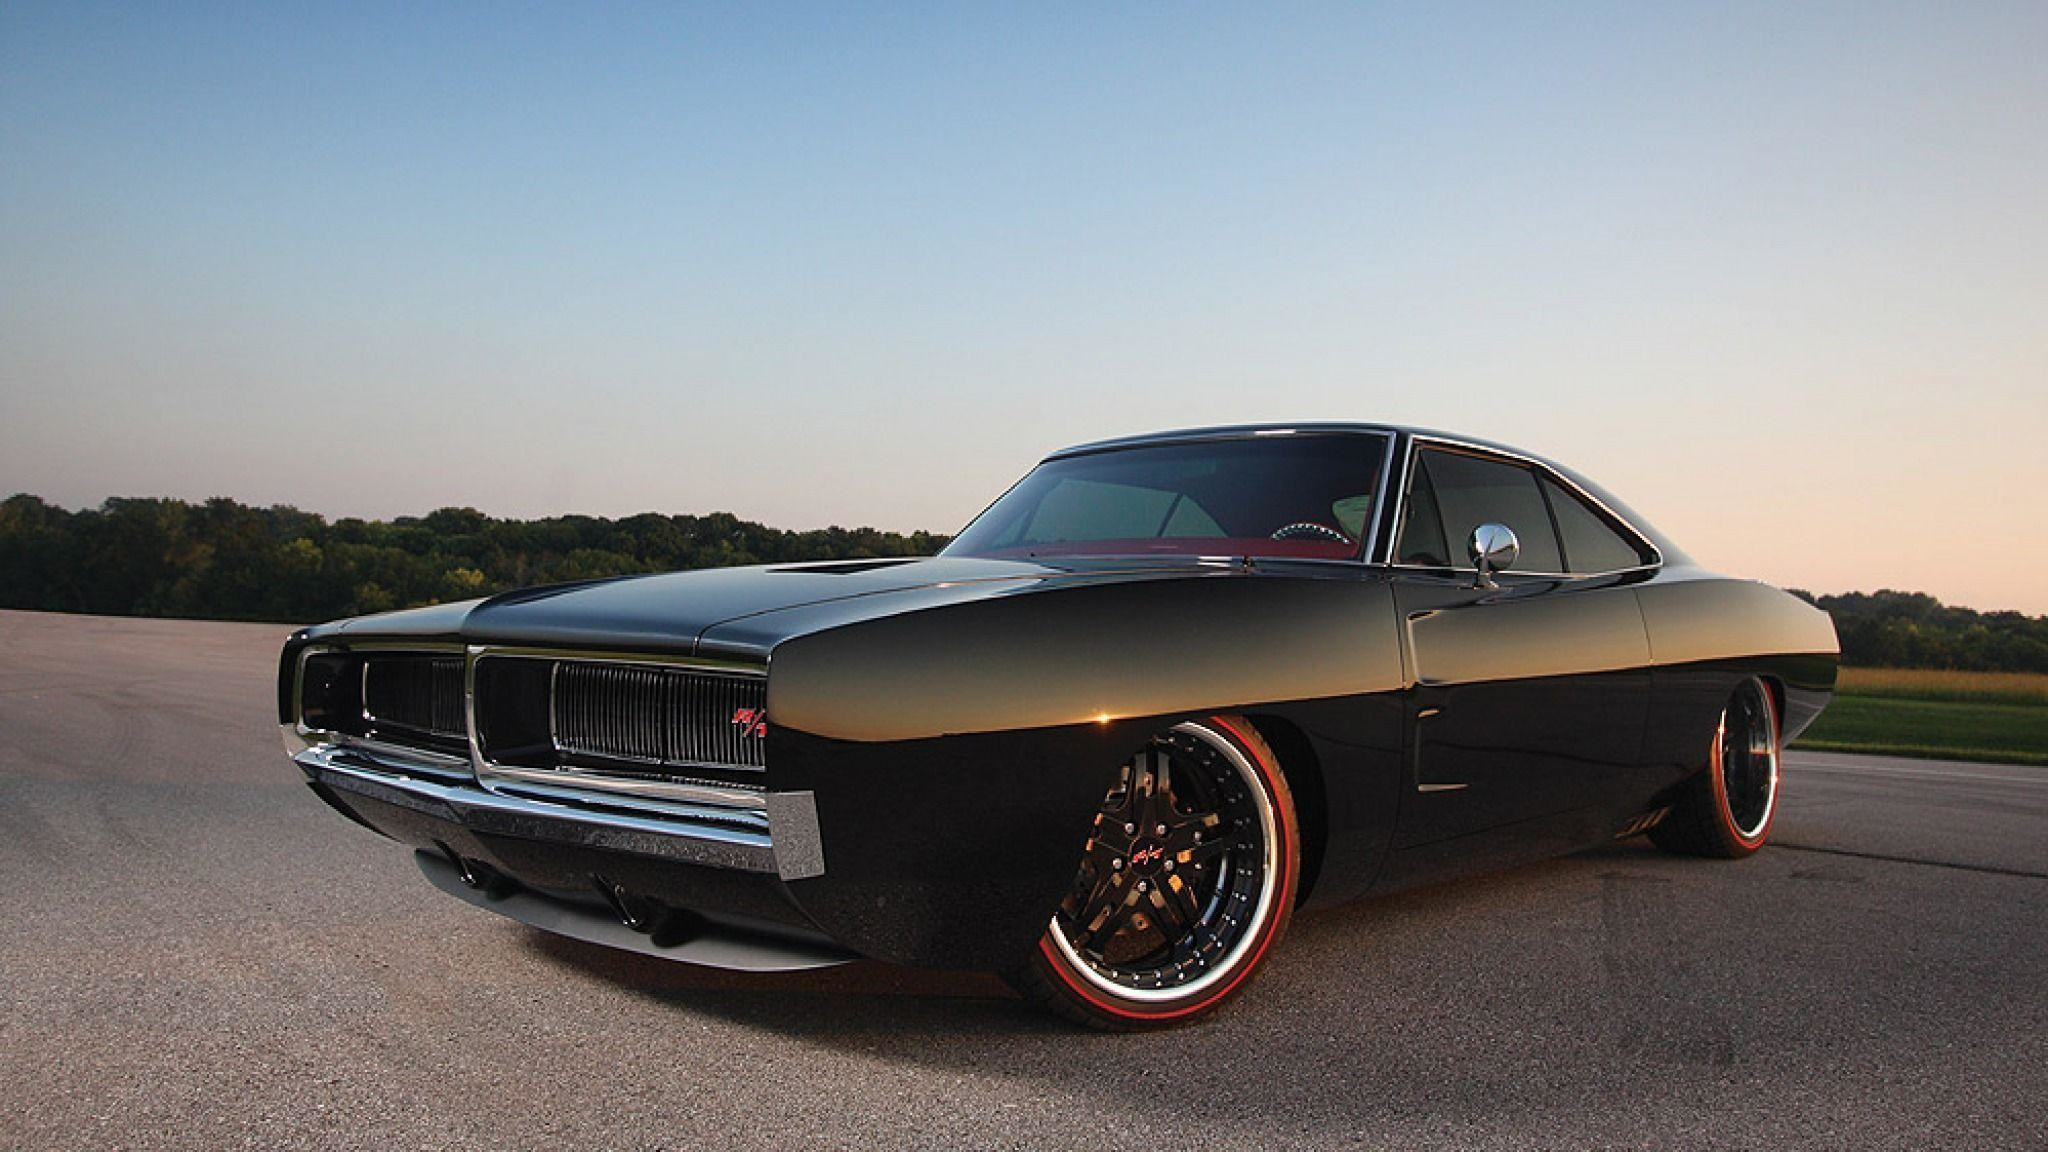 Dodge Charger Wallpaper Dodge Charger R T Hd Widescreen Wallpapers .